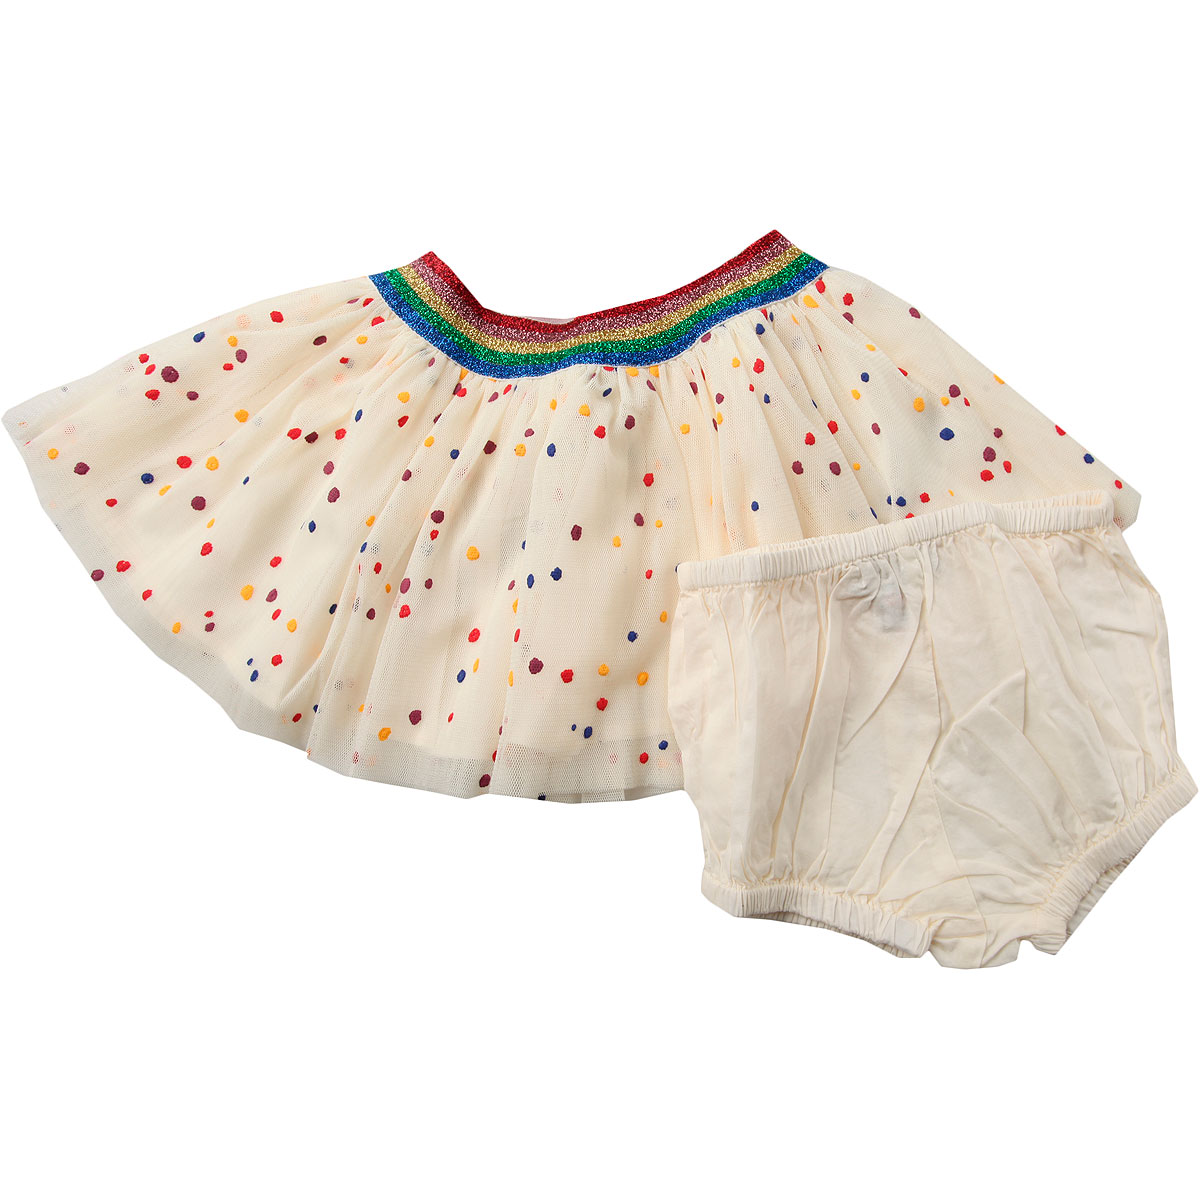 Image of Stella McCartney Baby Skirts for Girls, Ivory, polyester, 2017, 12M 18M 2Y 3M 3Y 6M 9M